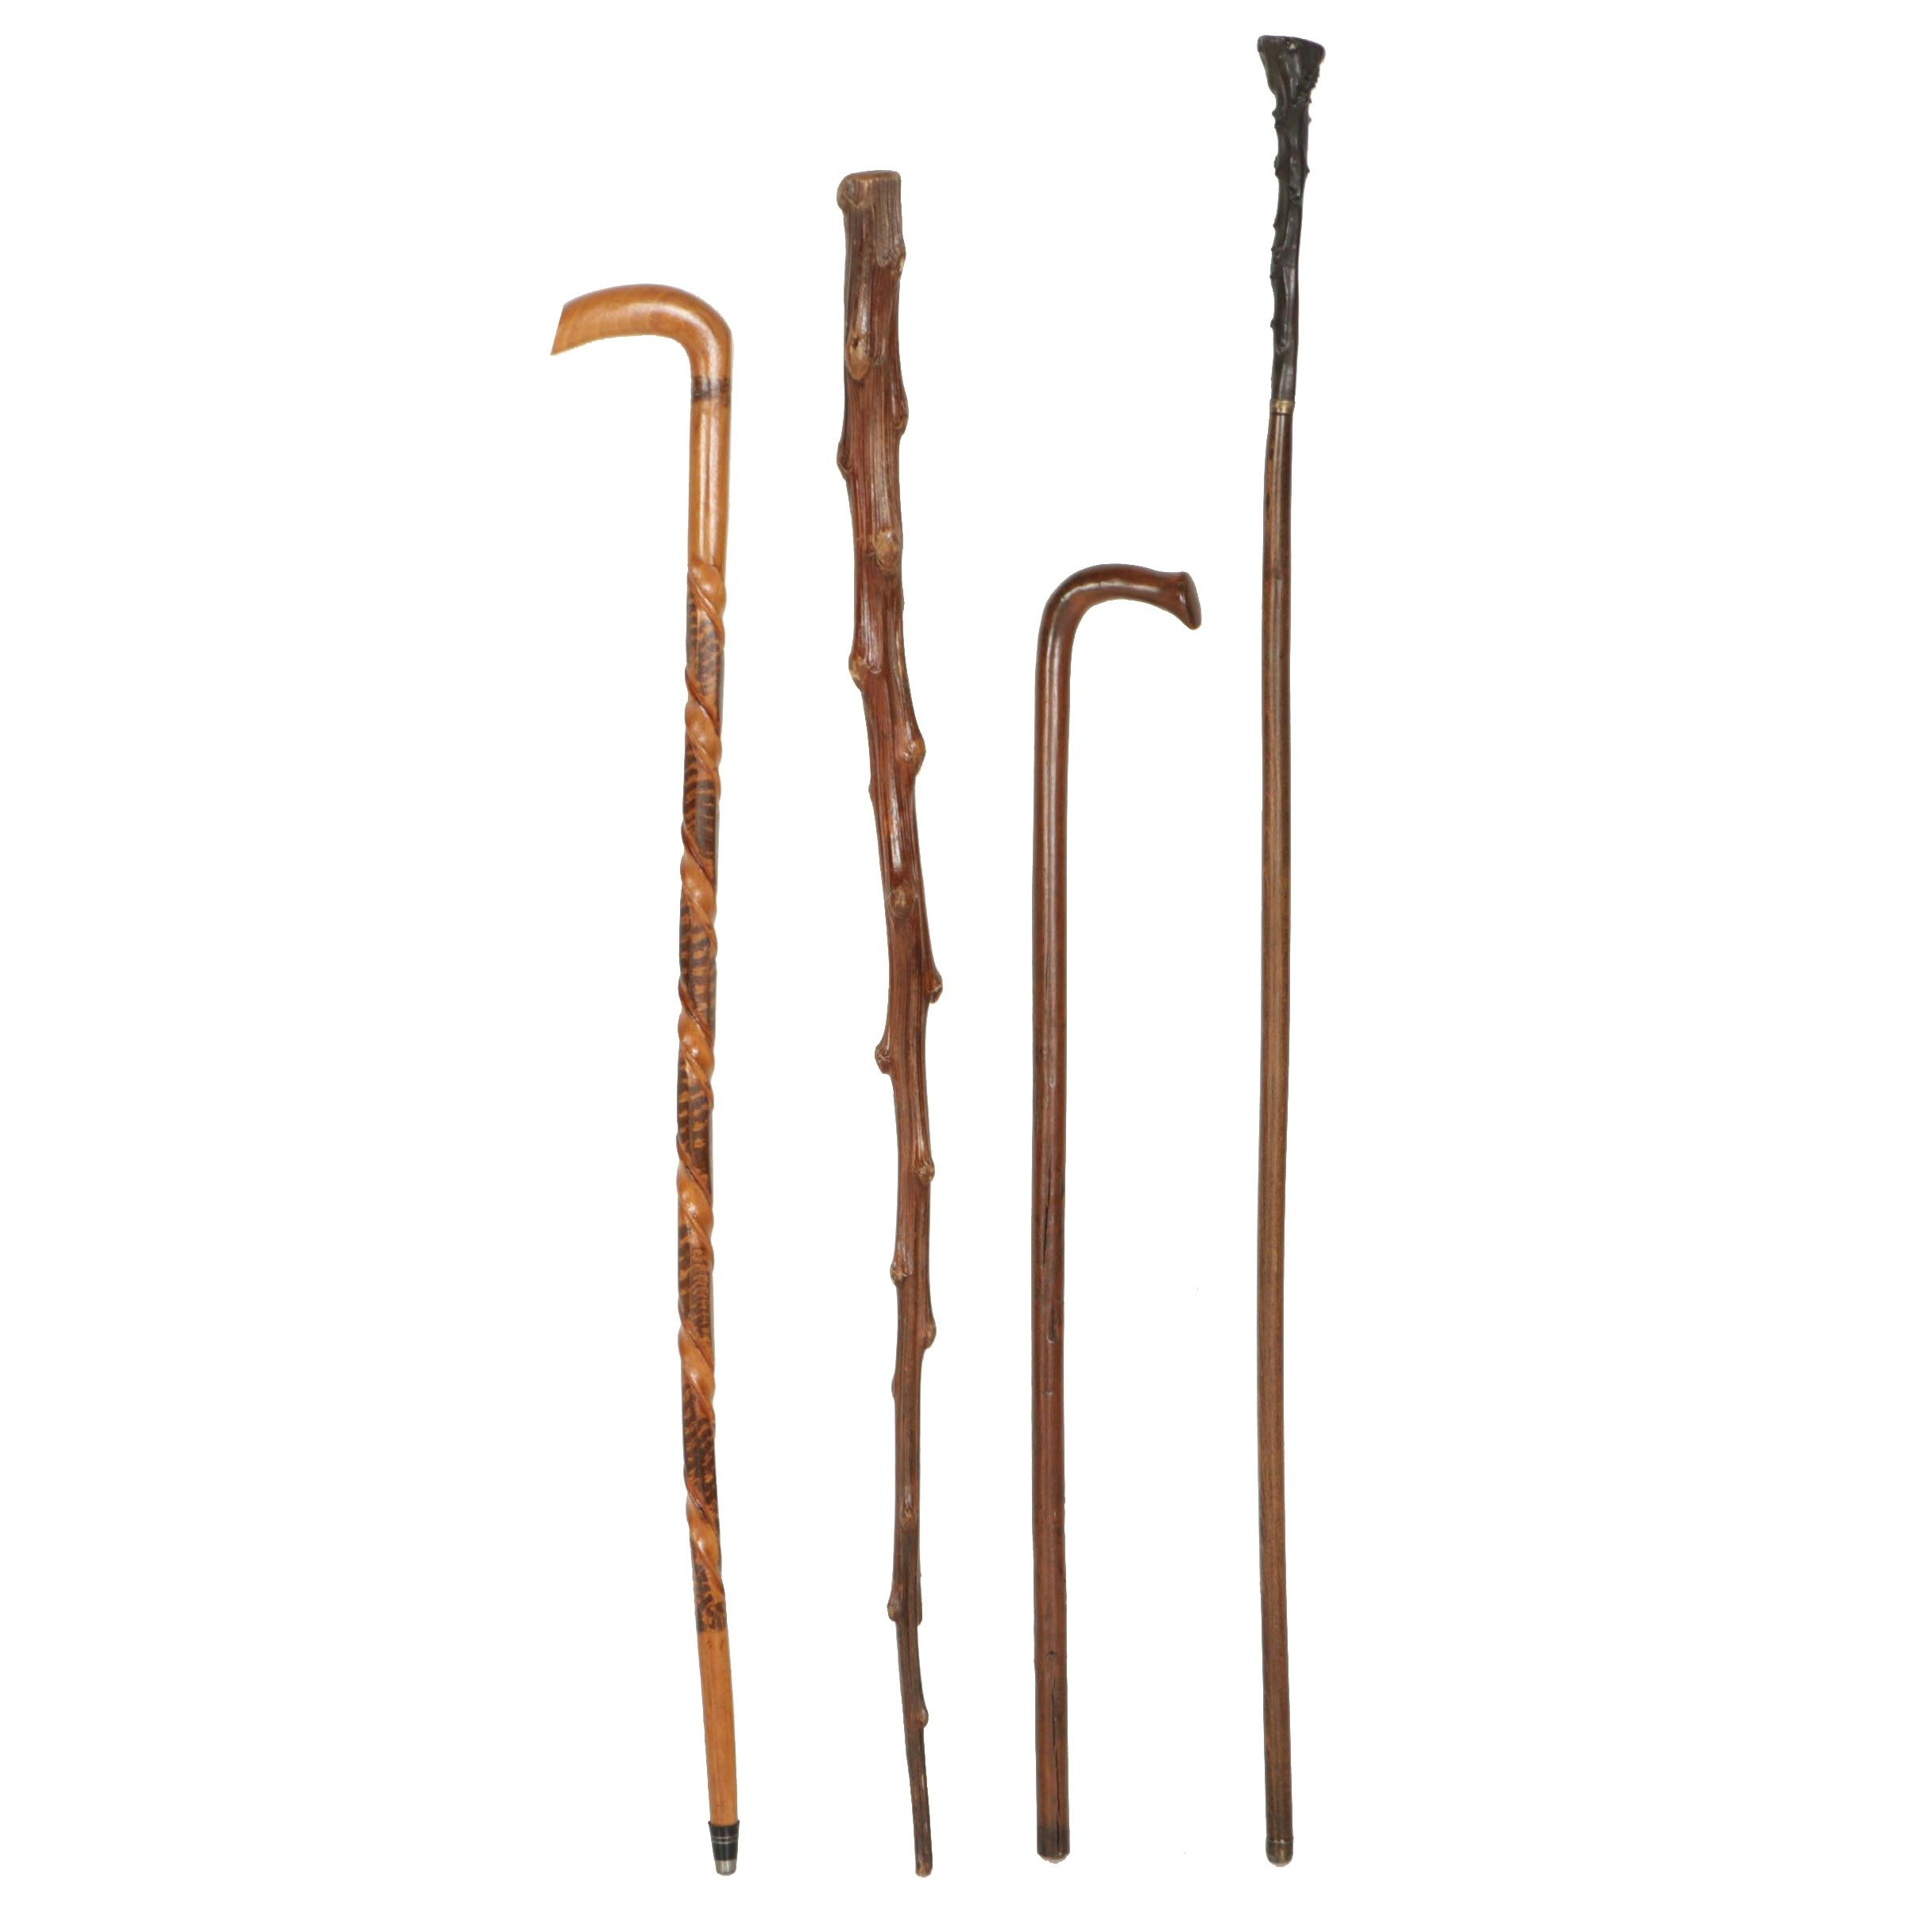 Four Vintage Walking Sticks